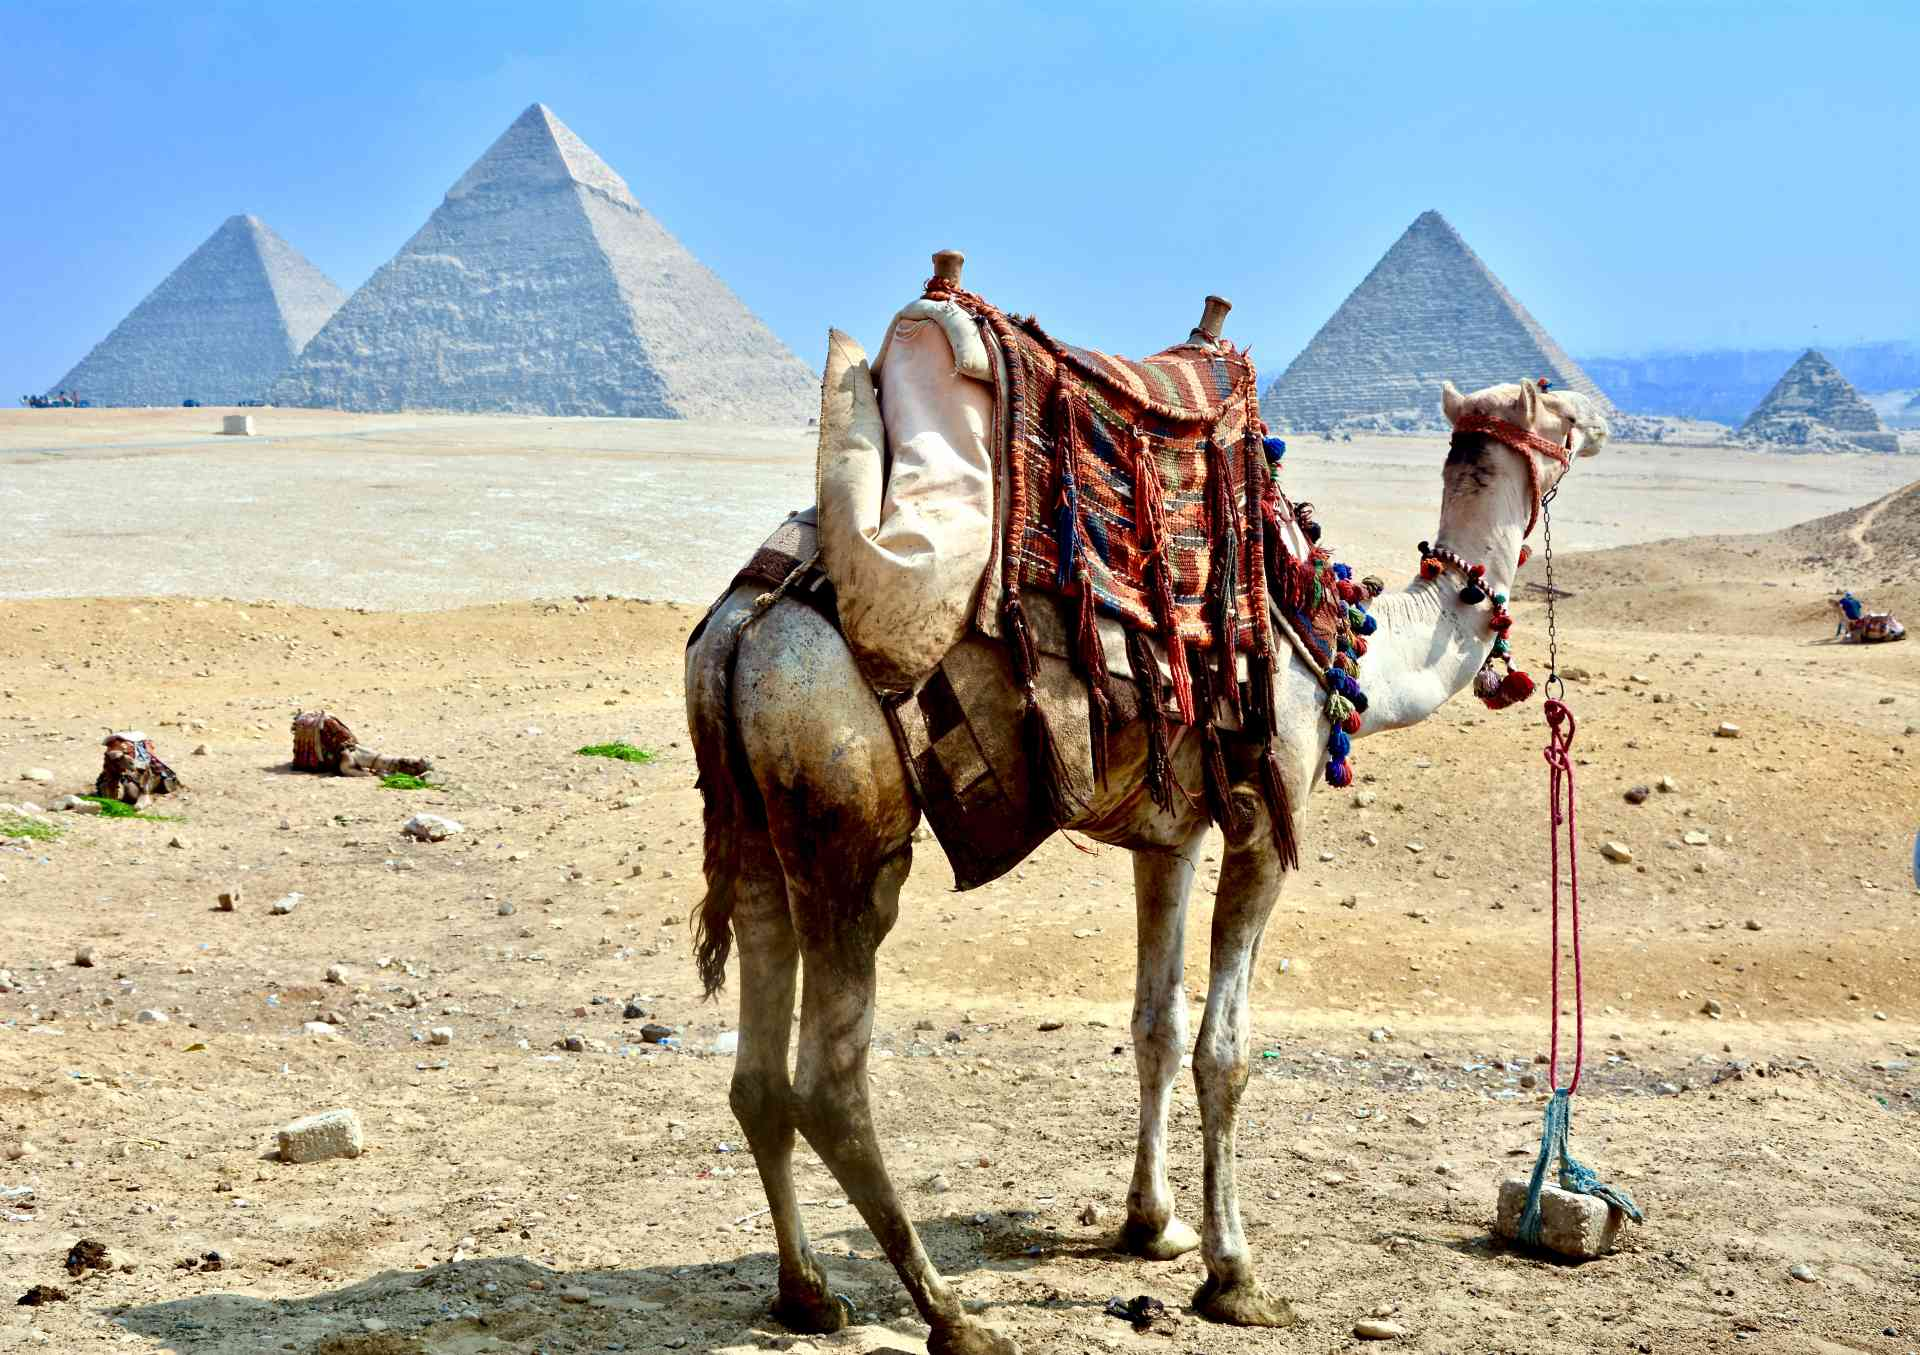 Camel in Giza, Egypt by Ian Carter